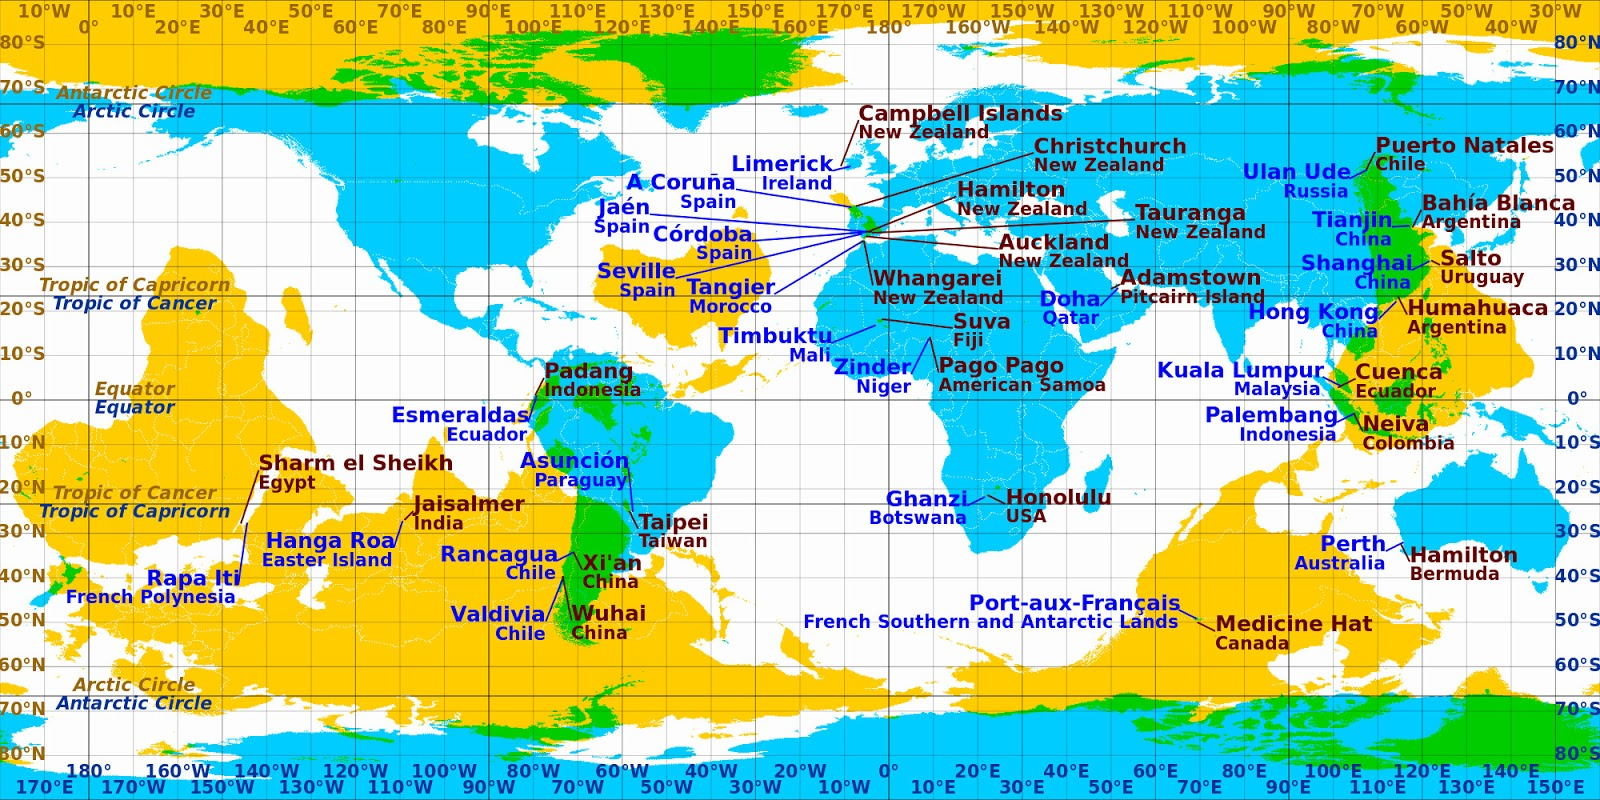 World map of antipodal cities